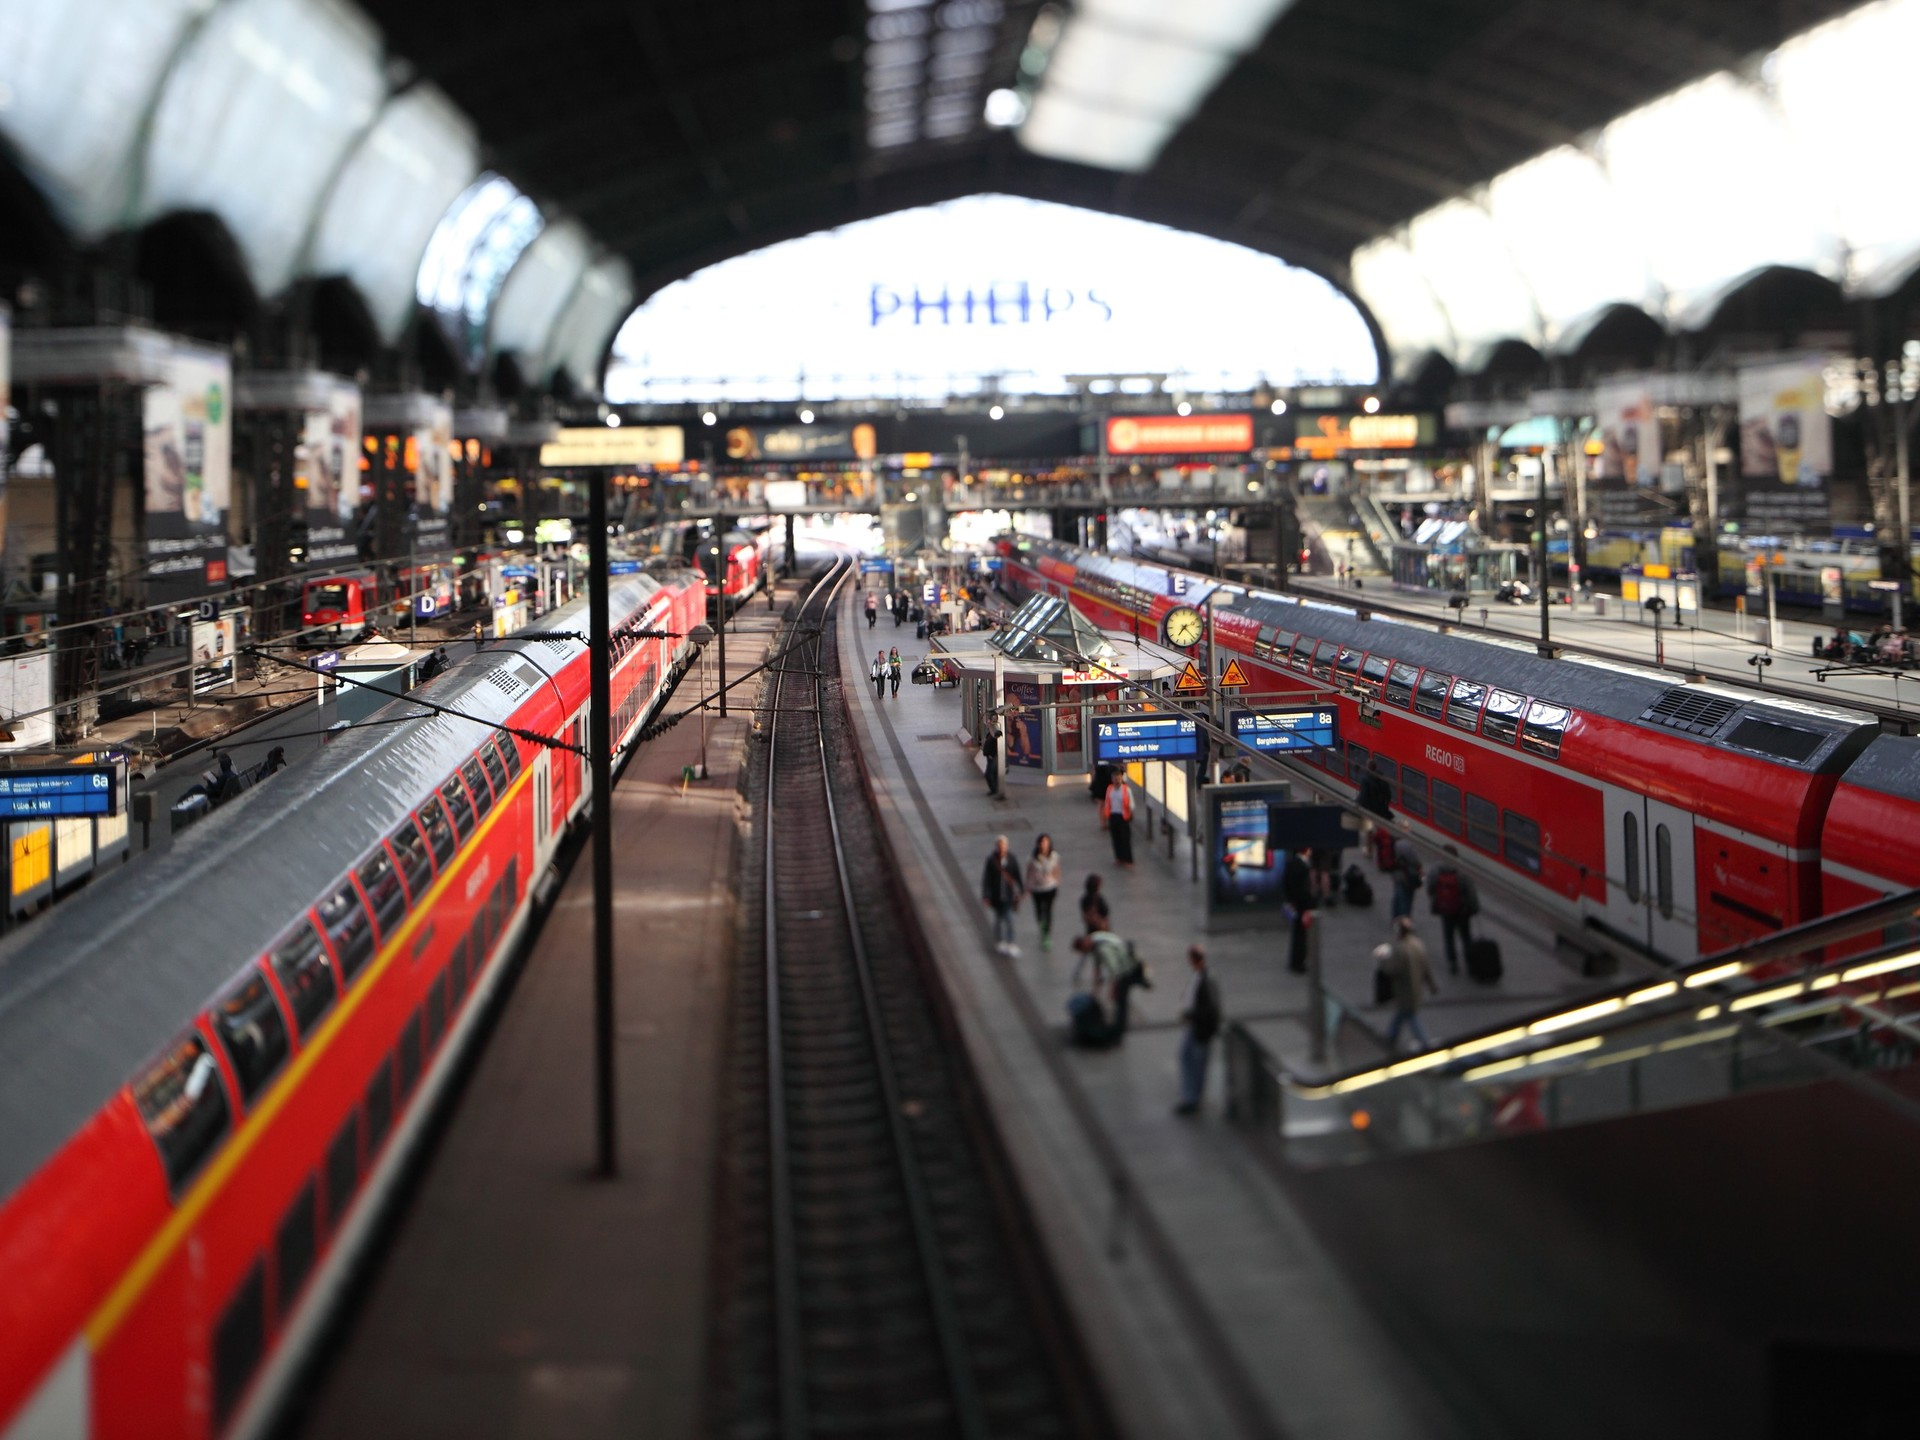 Tilt Shift Wallpaper for Desktop